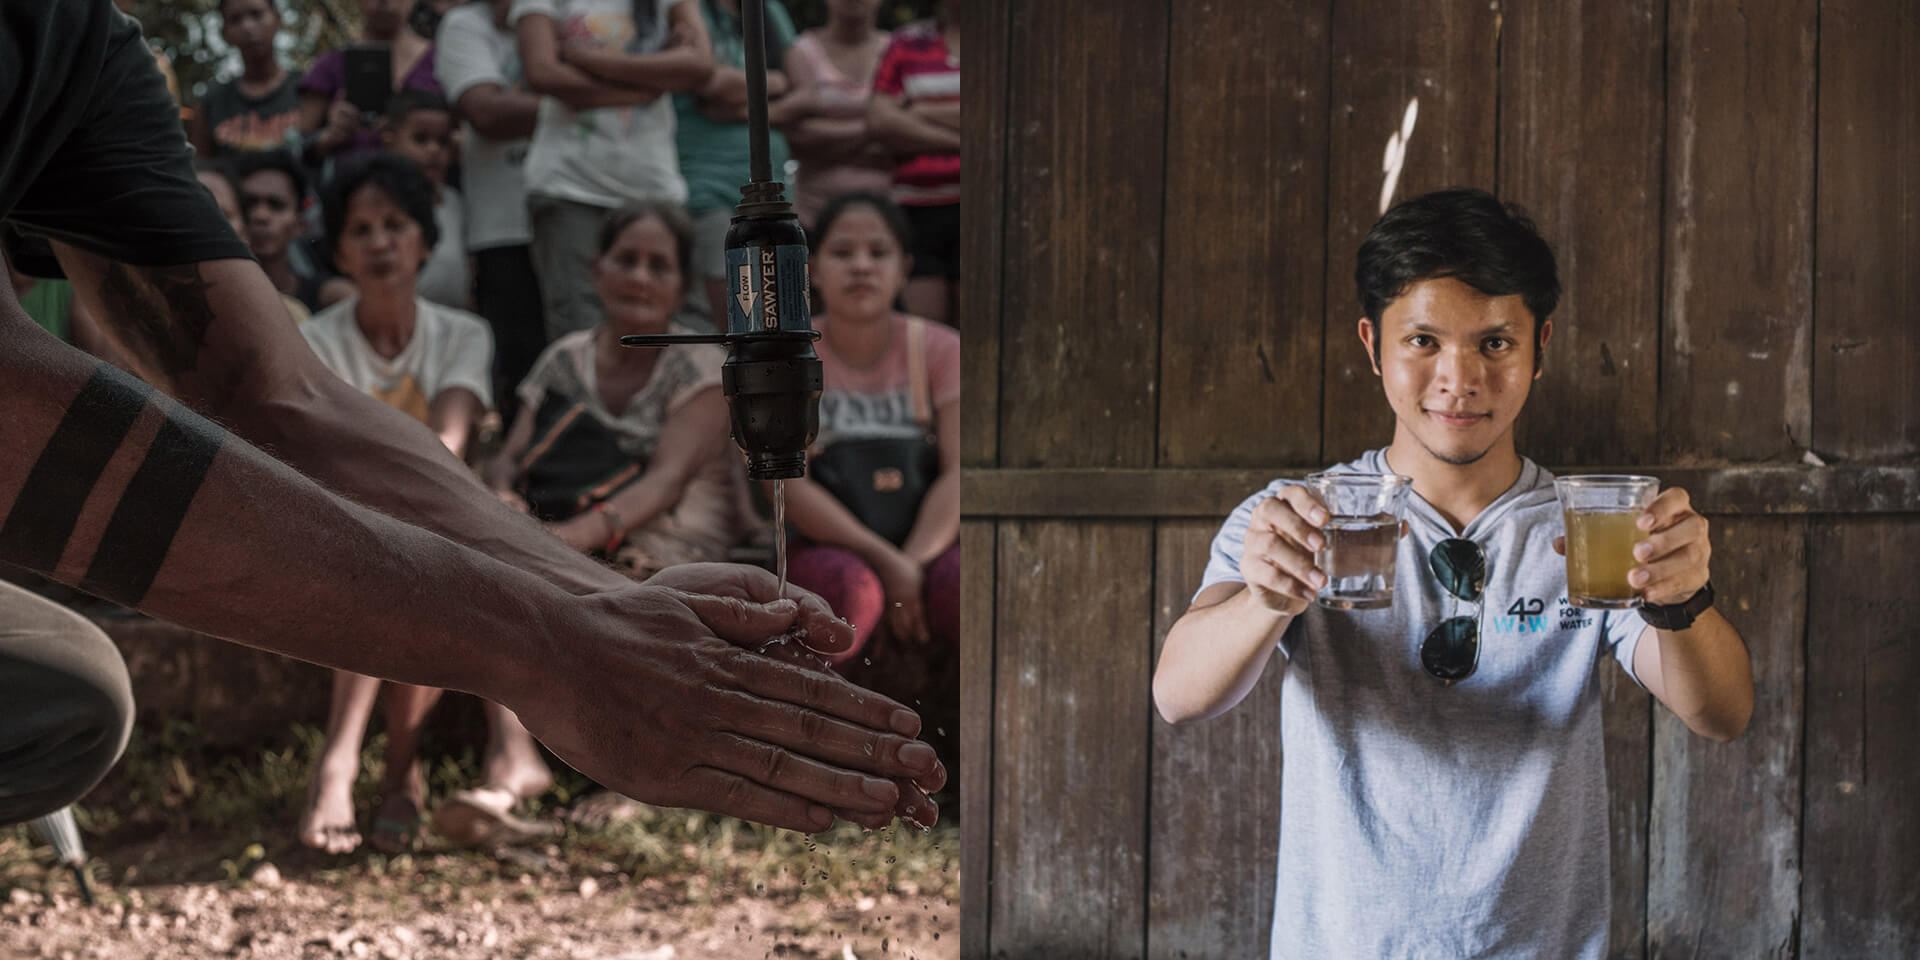 LEFT: Hand washing from the faucet of filtered water; RIGHT: Carlo Delantar holding a glass of muddy water on the right and its potable filtered counterpart on the left.